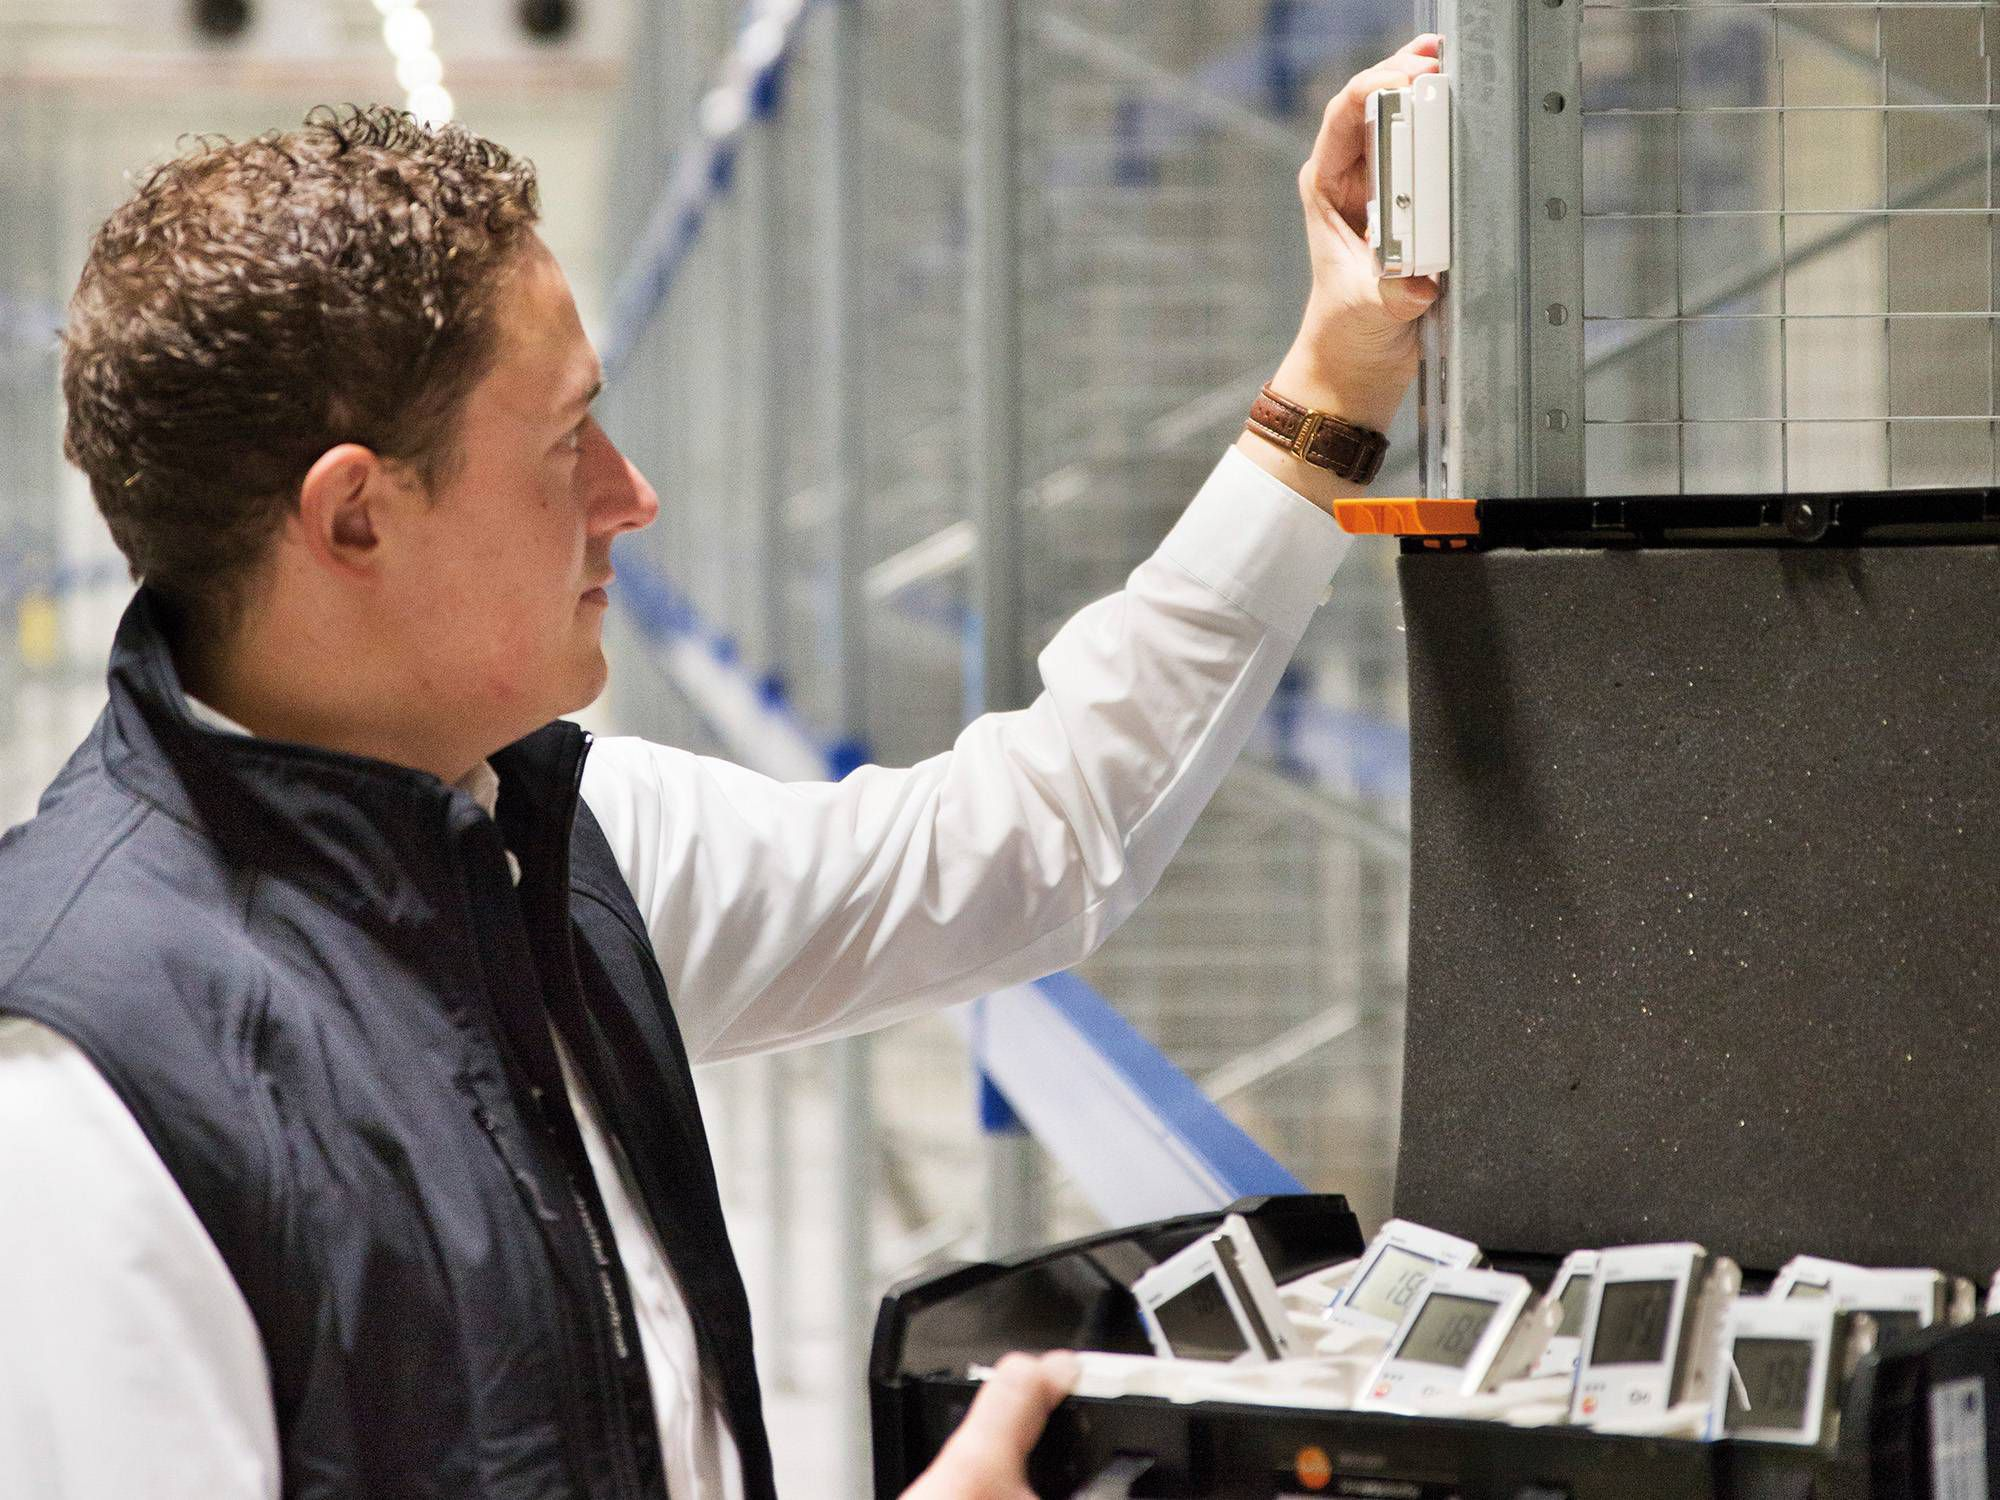 Data loggers check the temperature and humidity conditions in a high-bay warehouse